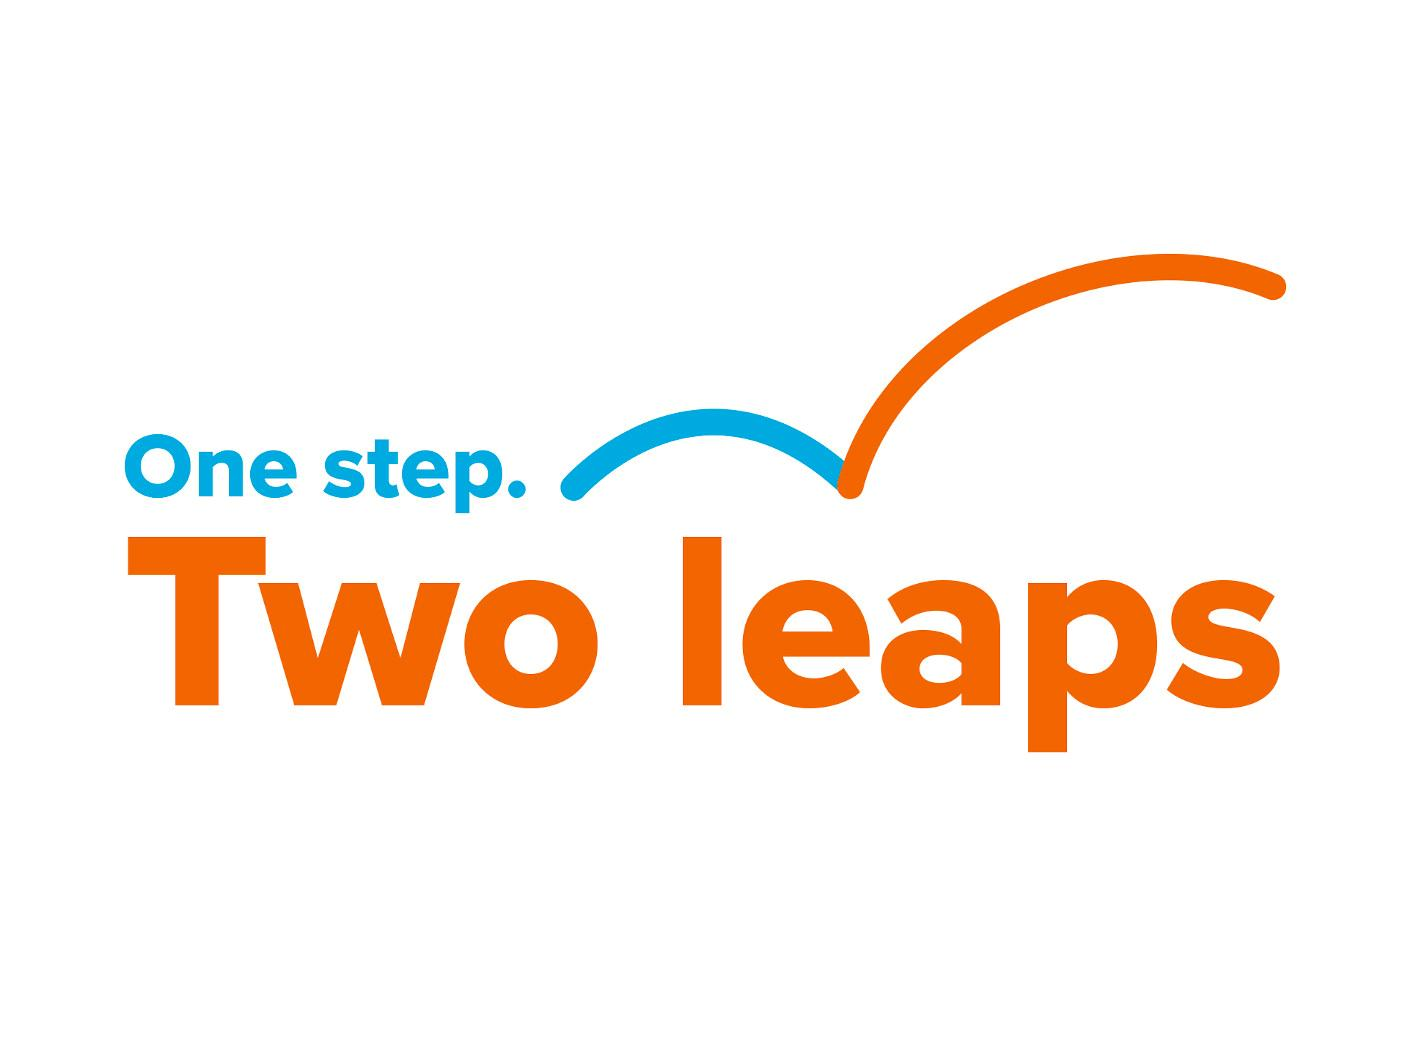 One step Two leaps